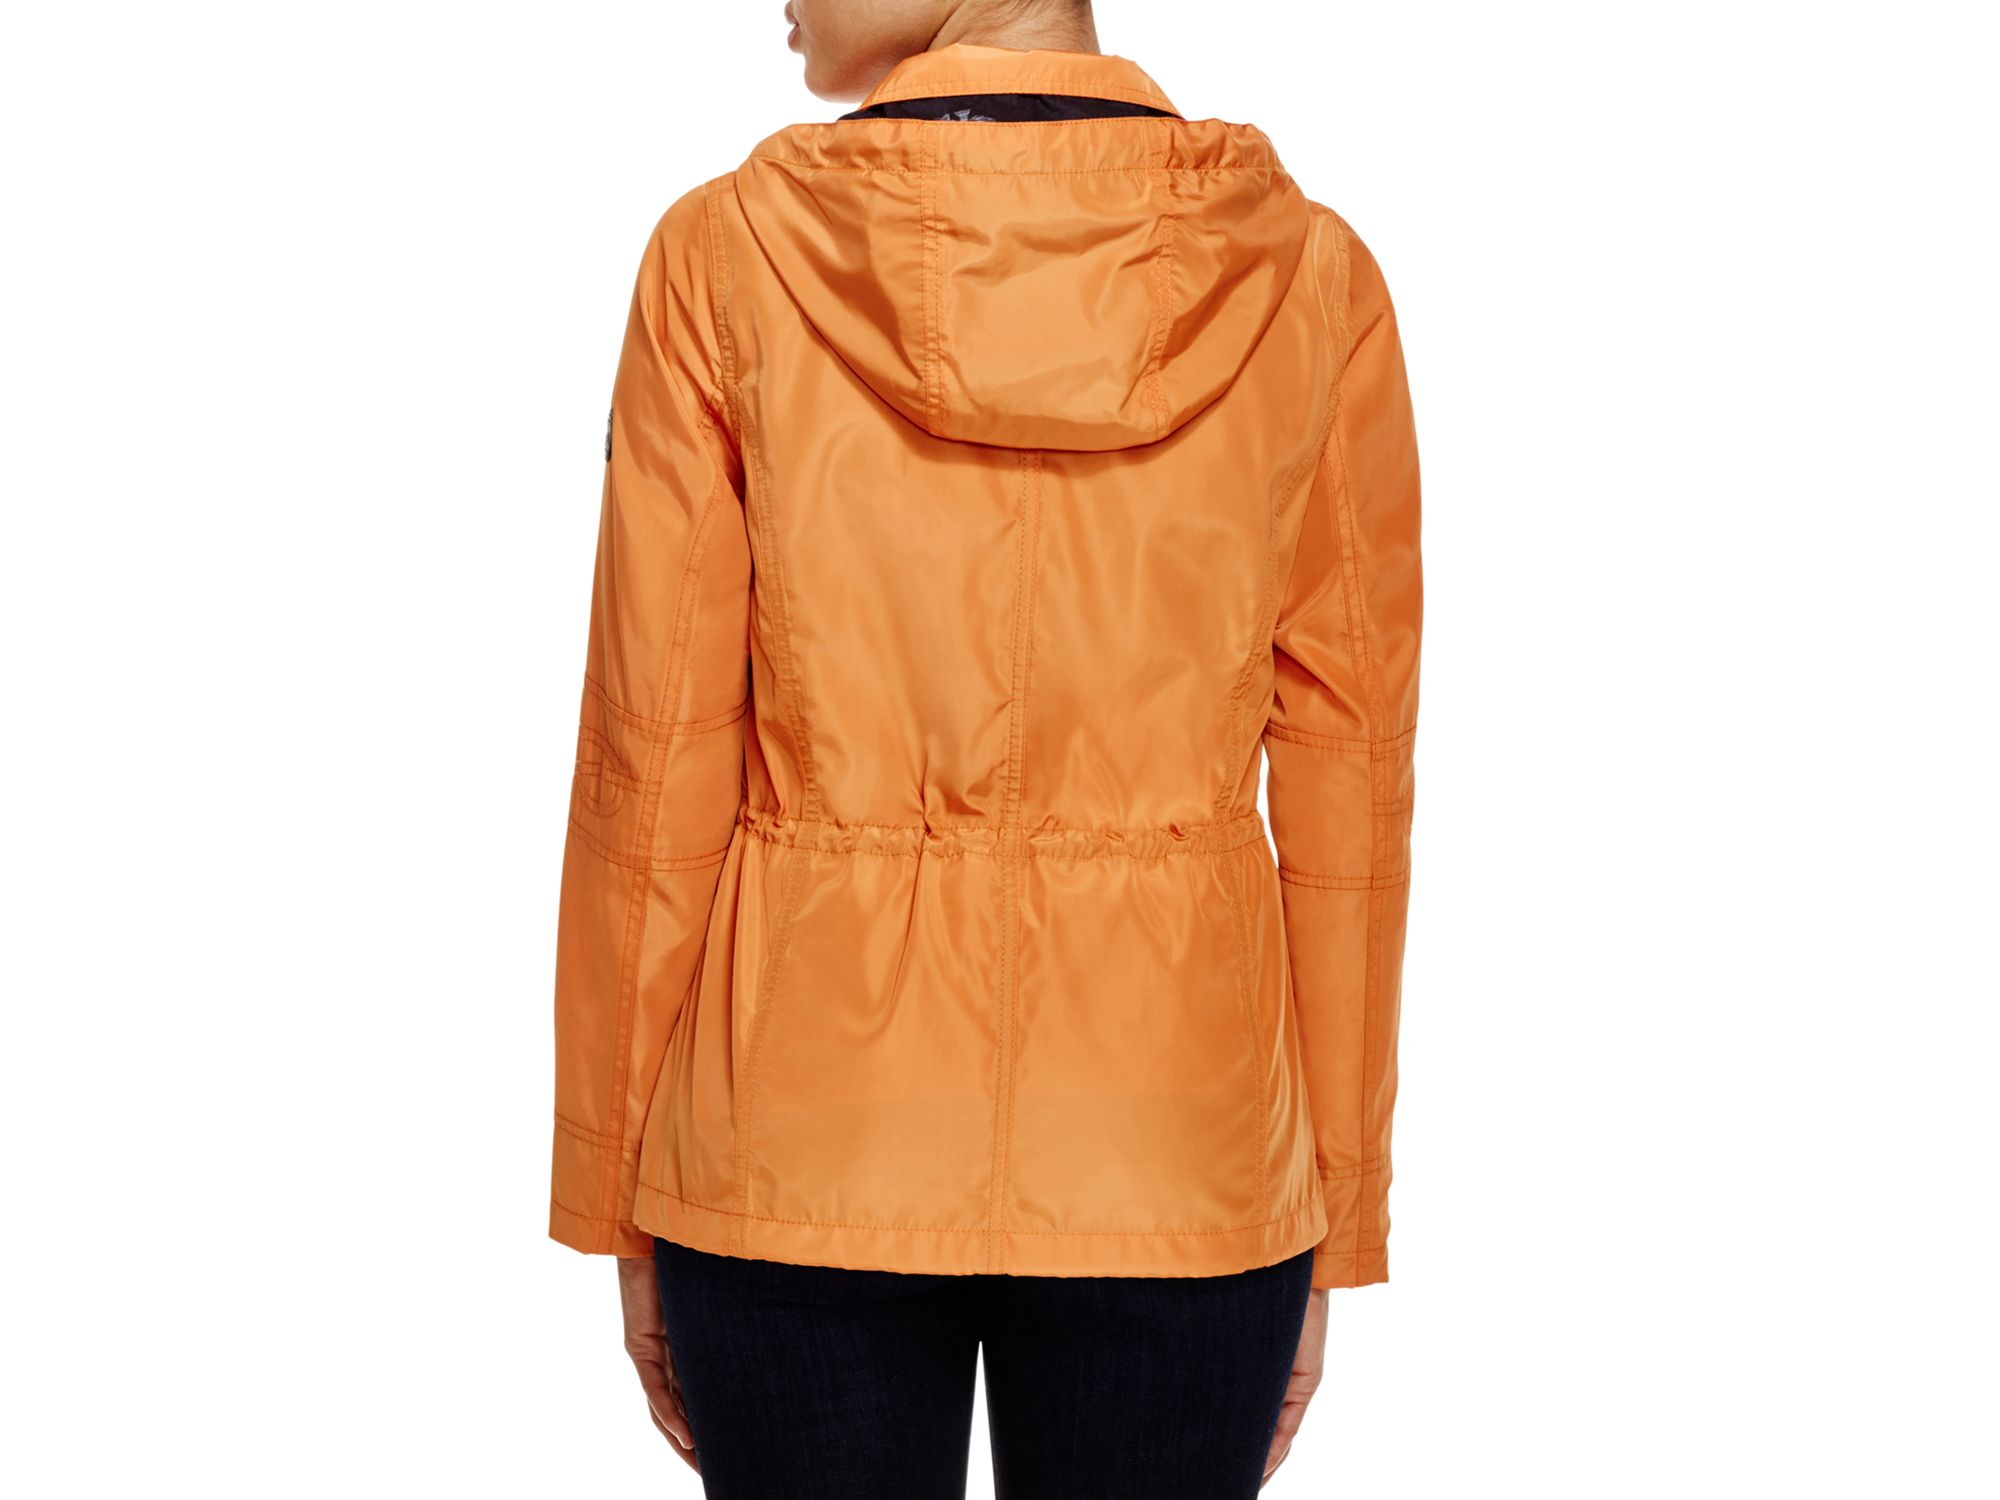 dc9e877f4 Barbour Clove-hitch Hooded Raincoat - 100% Bloomingdale's Exclusive ...